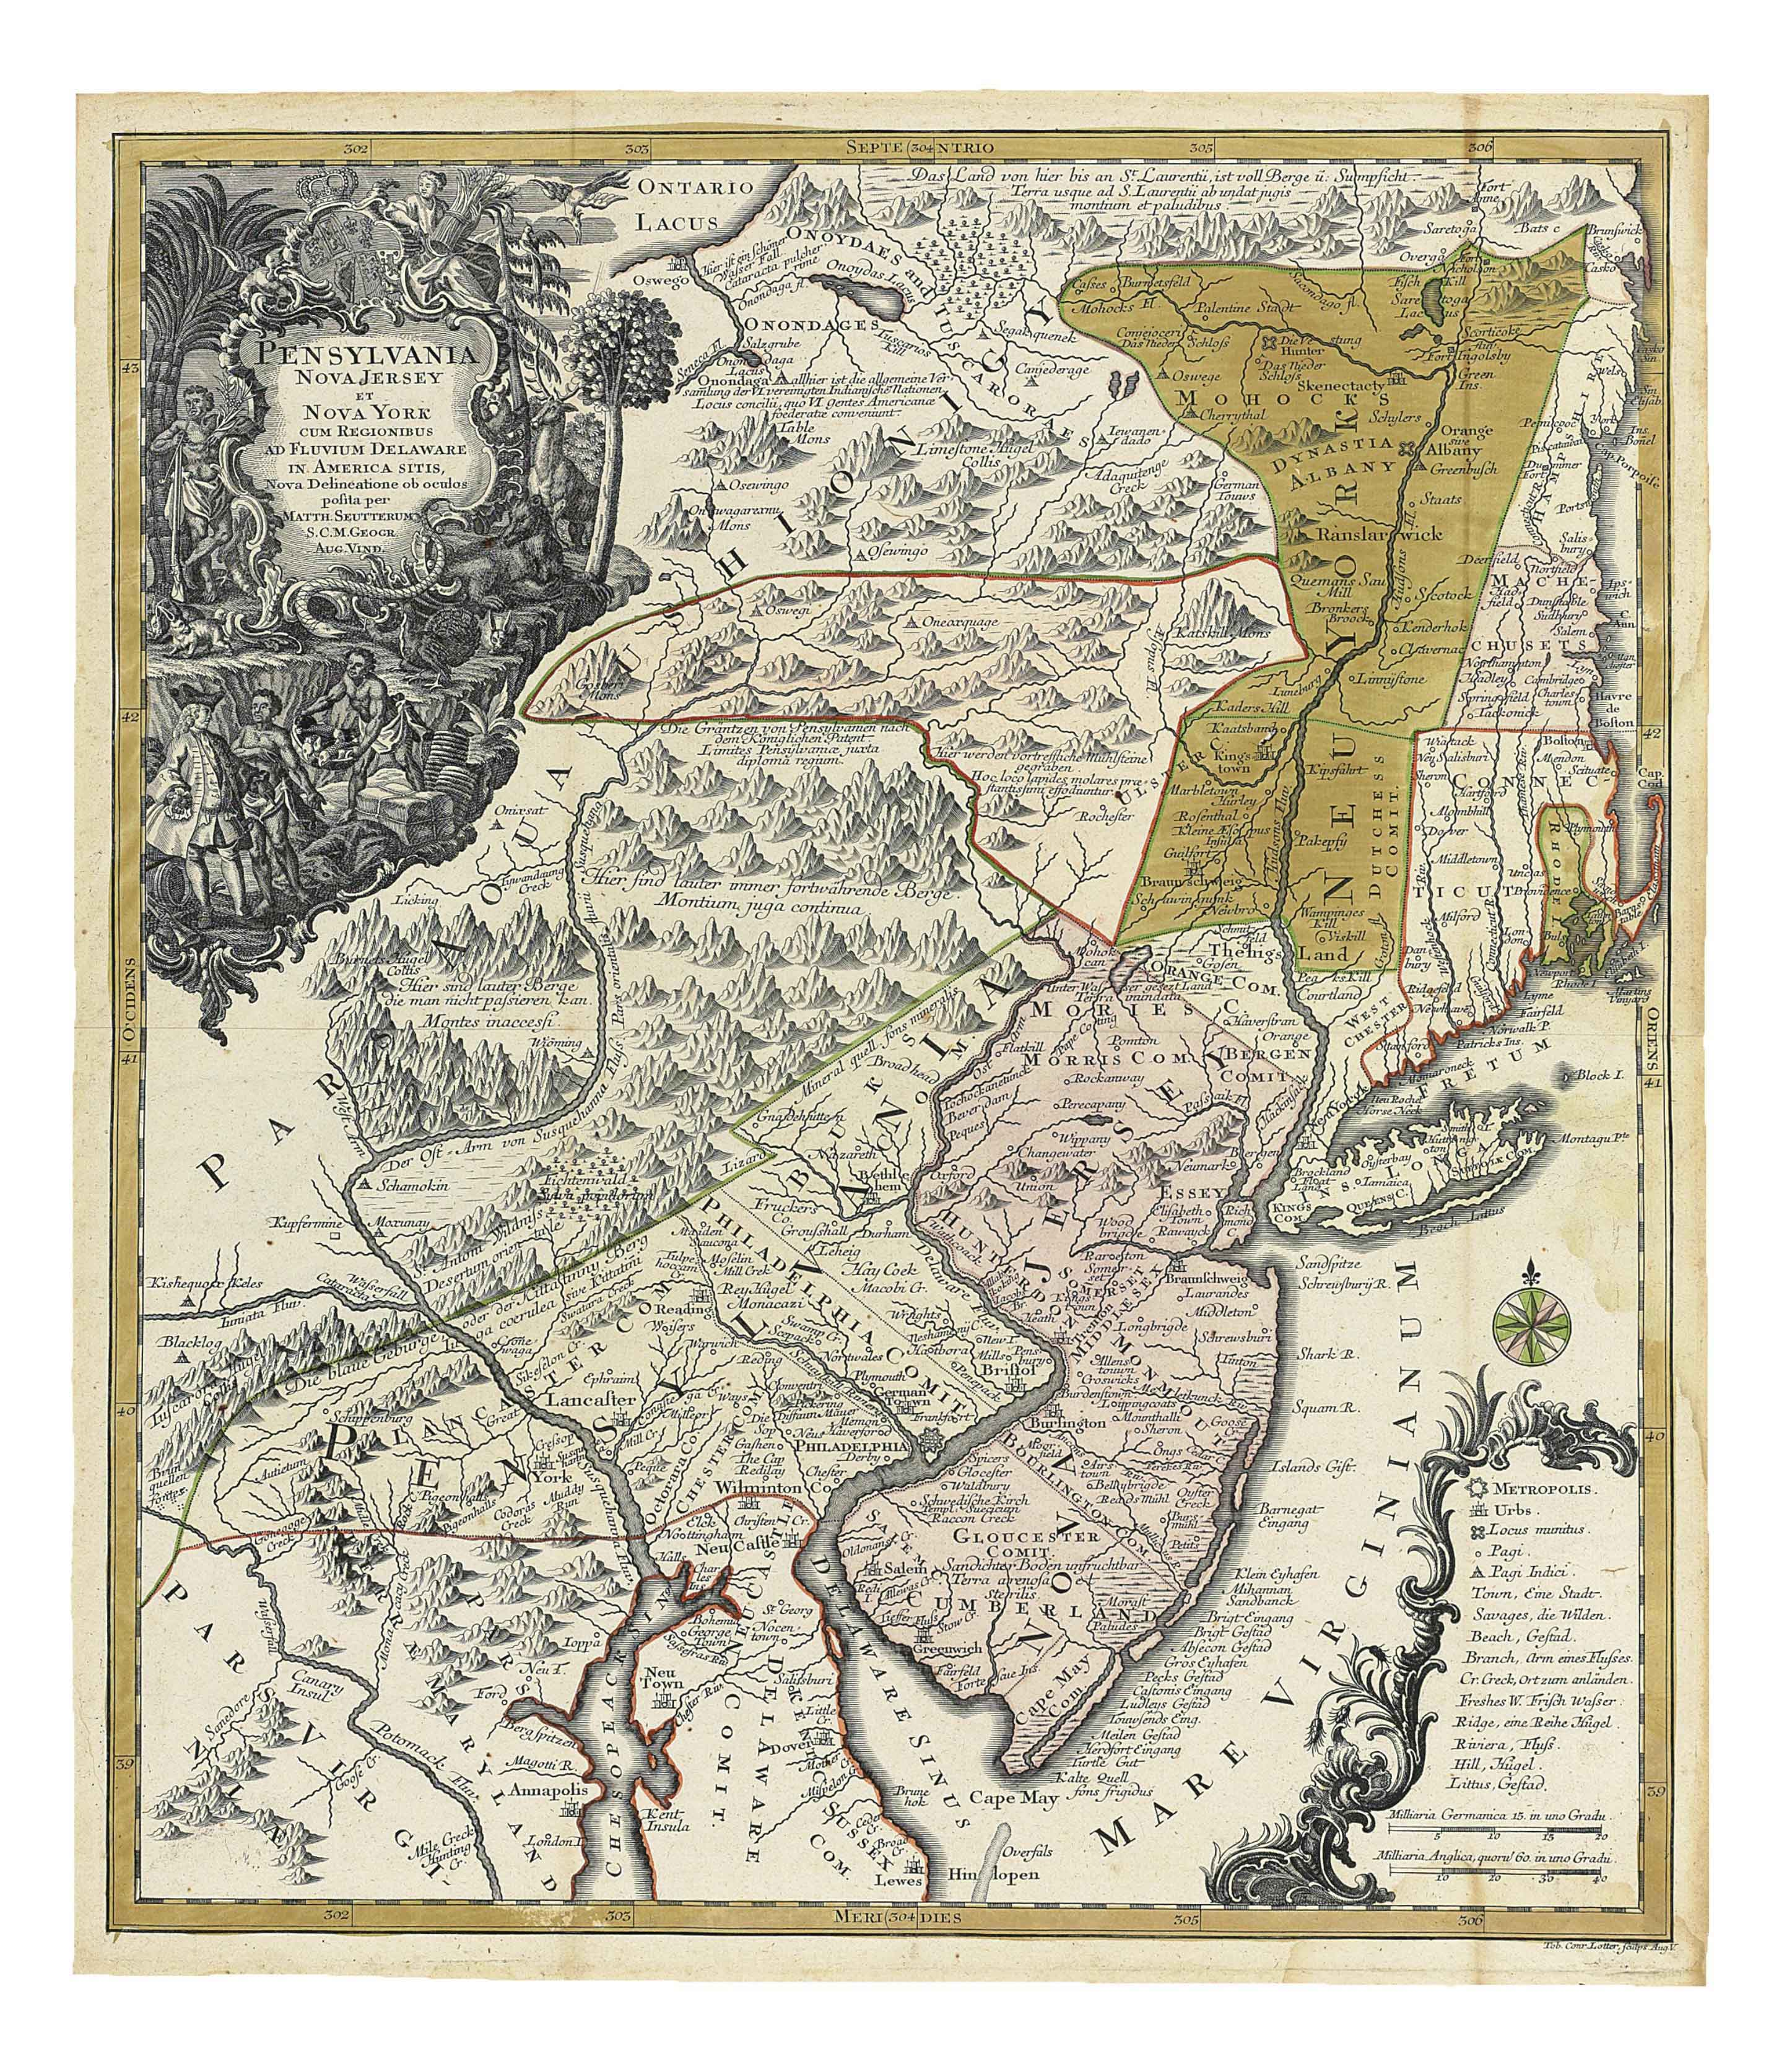 SEUTTER, Georg Matthäus (1678-1757). Pensylvania Nova Jersey et Nova York cum regionibus ad fluvium Delaware in America sitis. [Augsburg: 1751]. Double-page engraved map, with ornate cartouche depicting William Penn trading with native Americans surrounded by indigenous flora and fauna, hand-coloured in outline and with colouring to New Jersey, New York and Rhode Island. (Very light dampstain at right-hand edge, mainly in the sea.) 598 x 515mm.